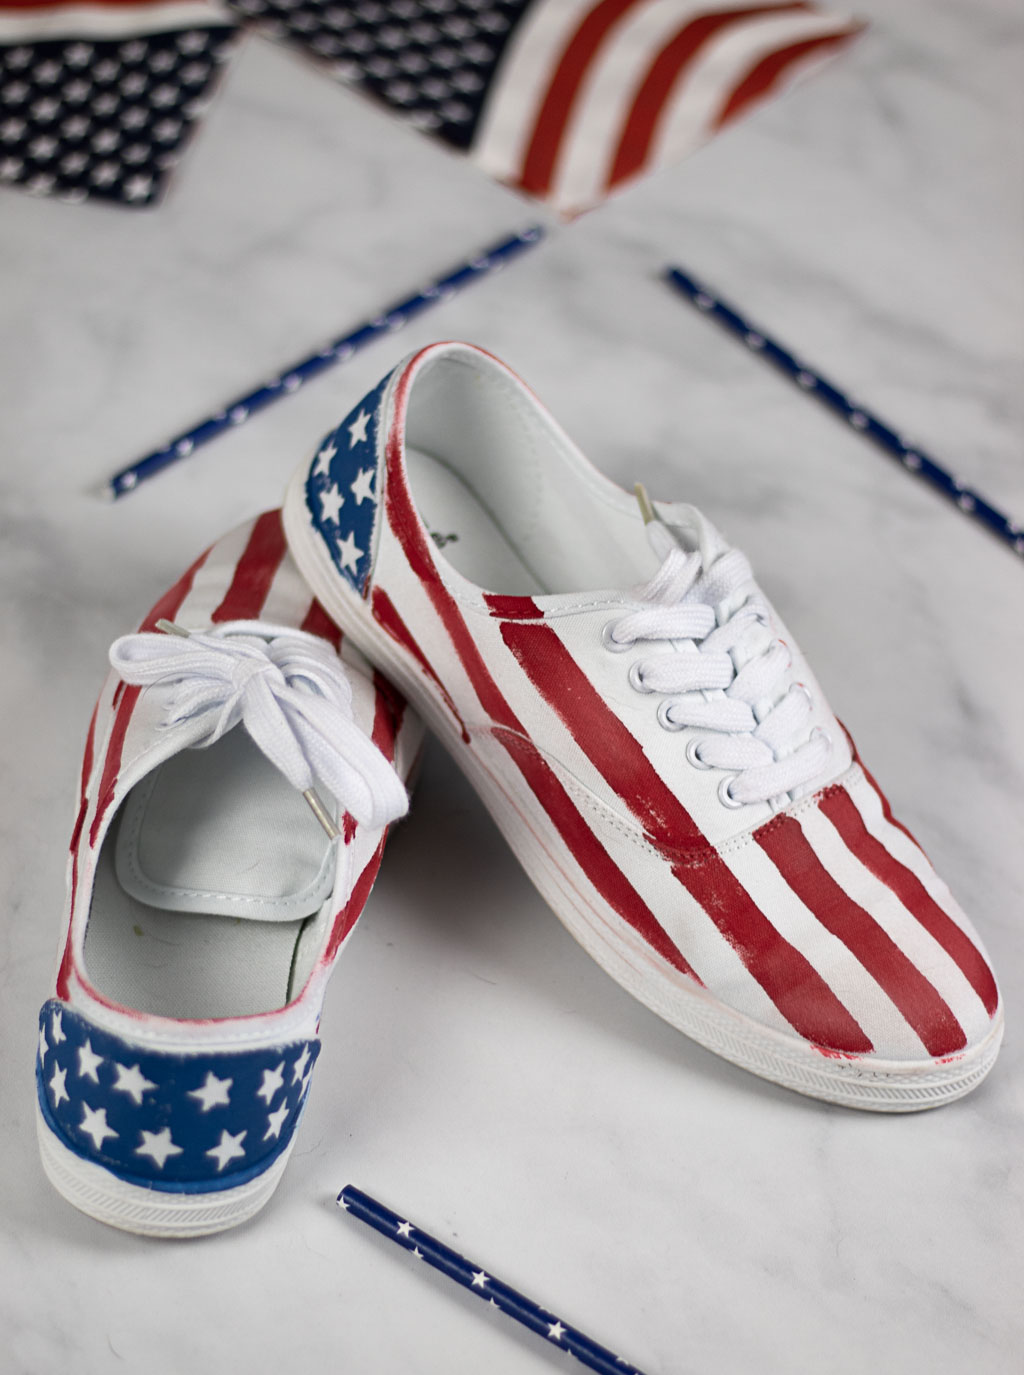 4th of july hand painted shoes